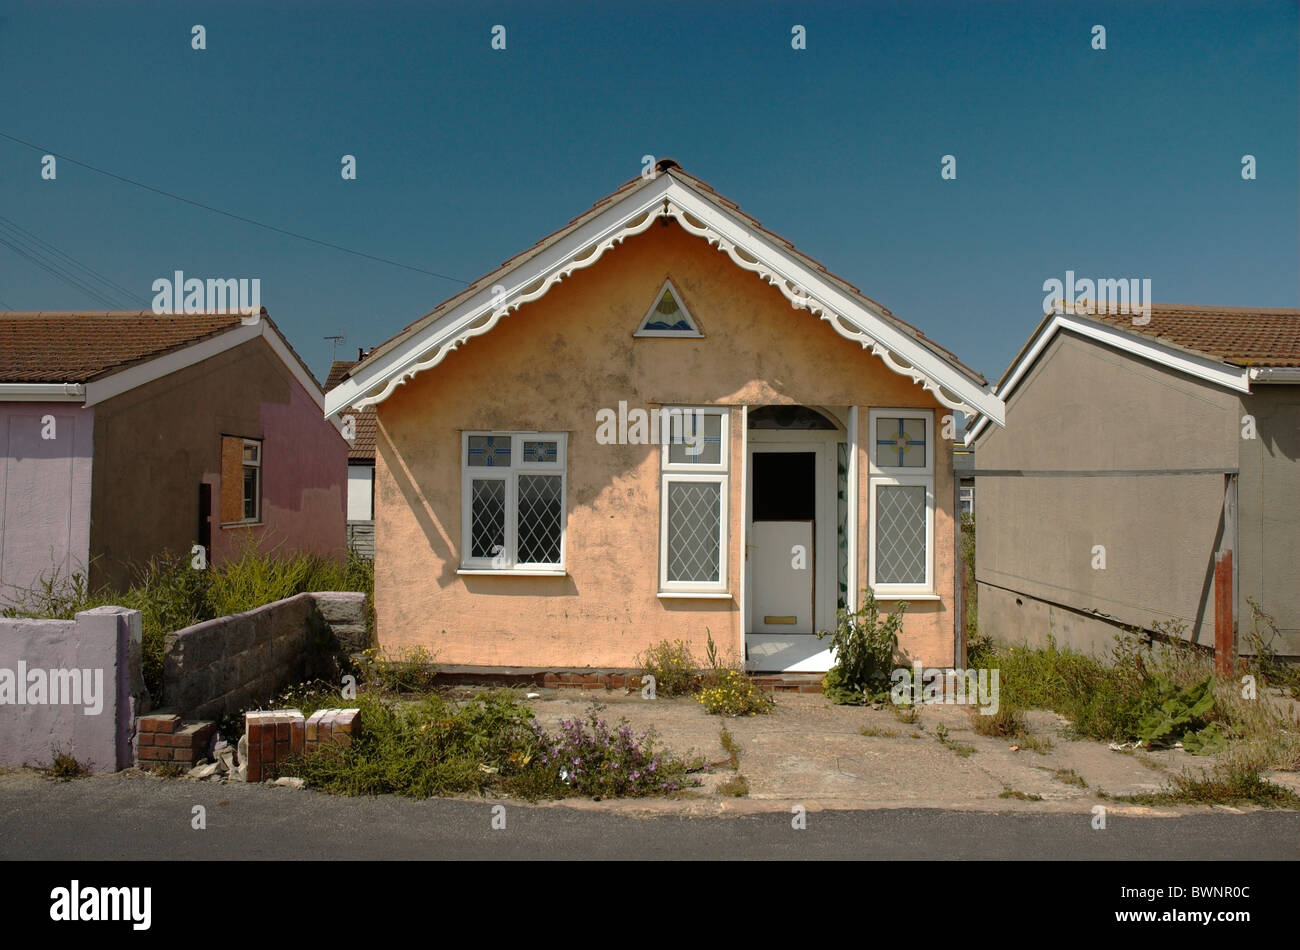 Run down house in need in renovation, Jaywick, Essex - Stock Image